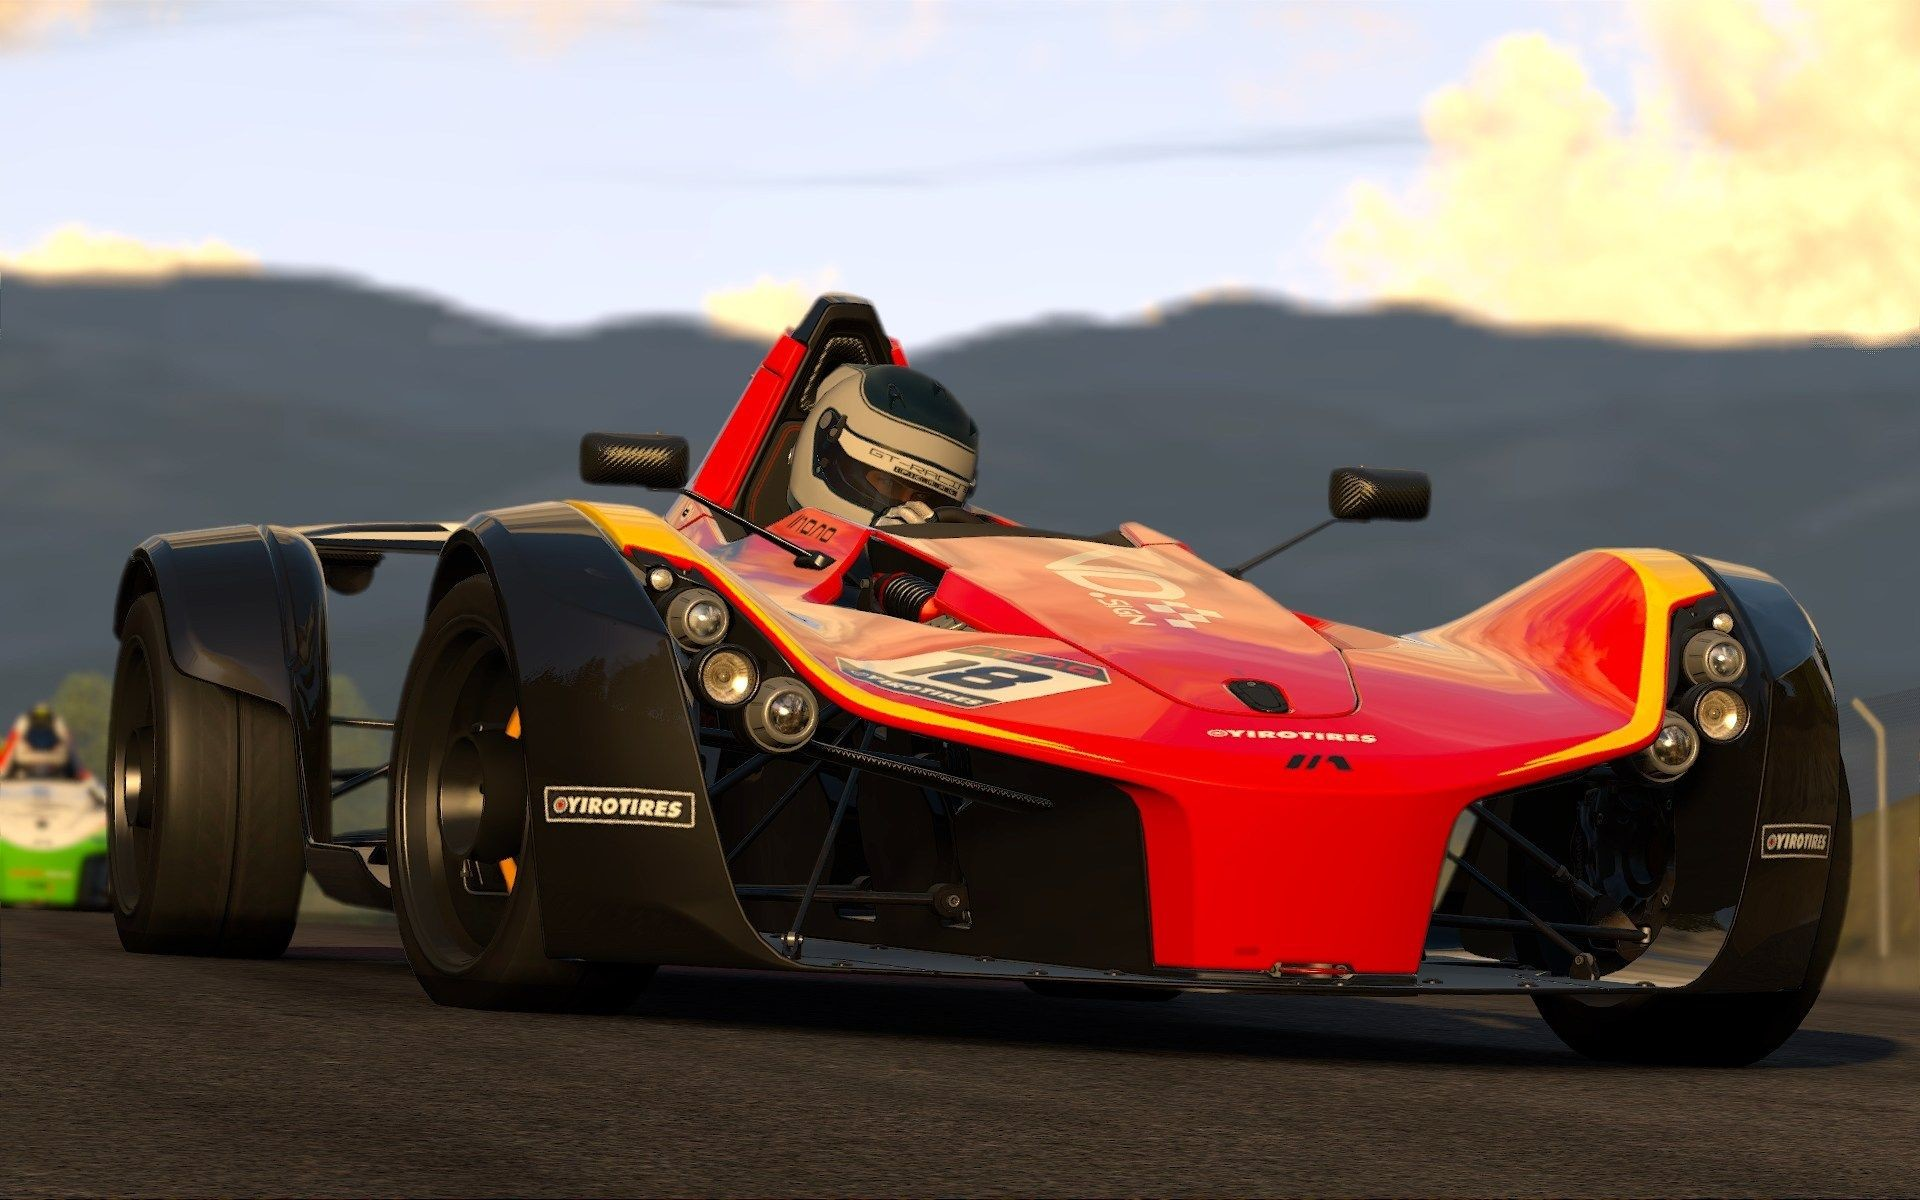 Res: 1920x1200, project cars 1080p high quality